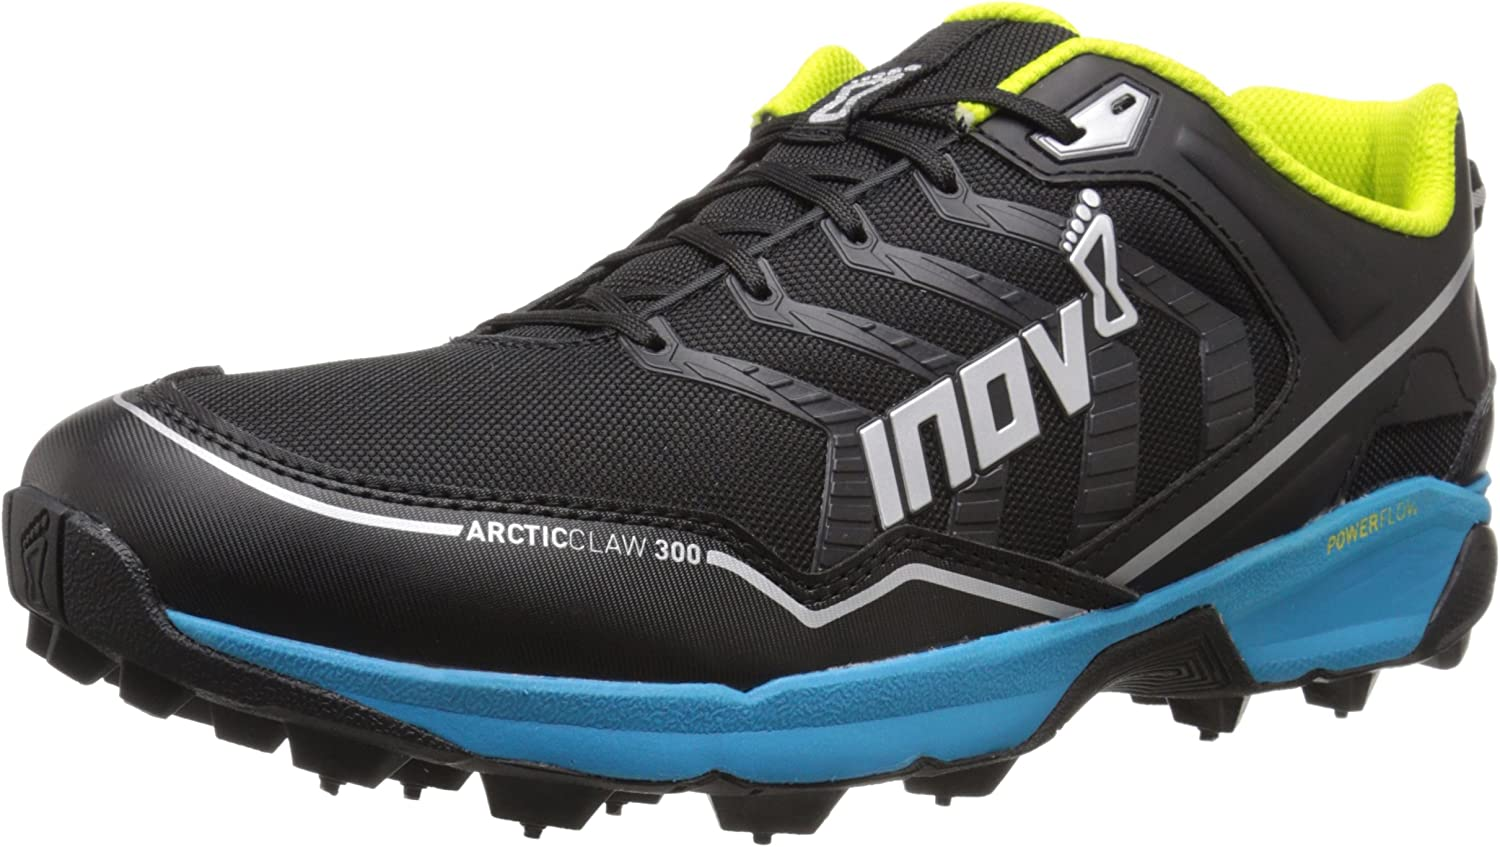 Inov-8 Arctic Claw 300 Trail Running Shoe